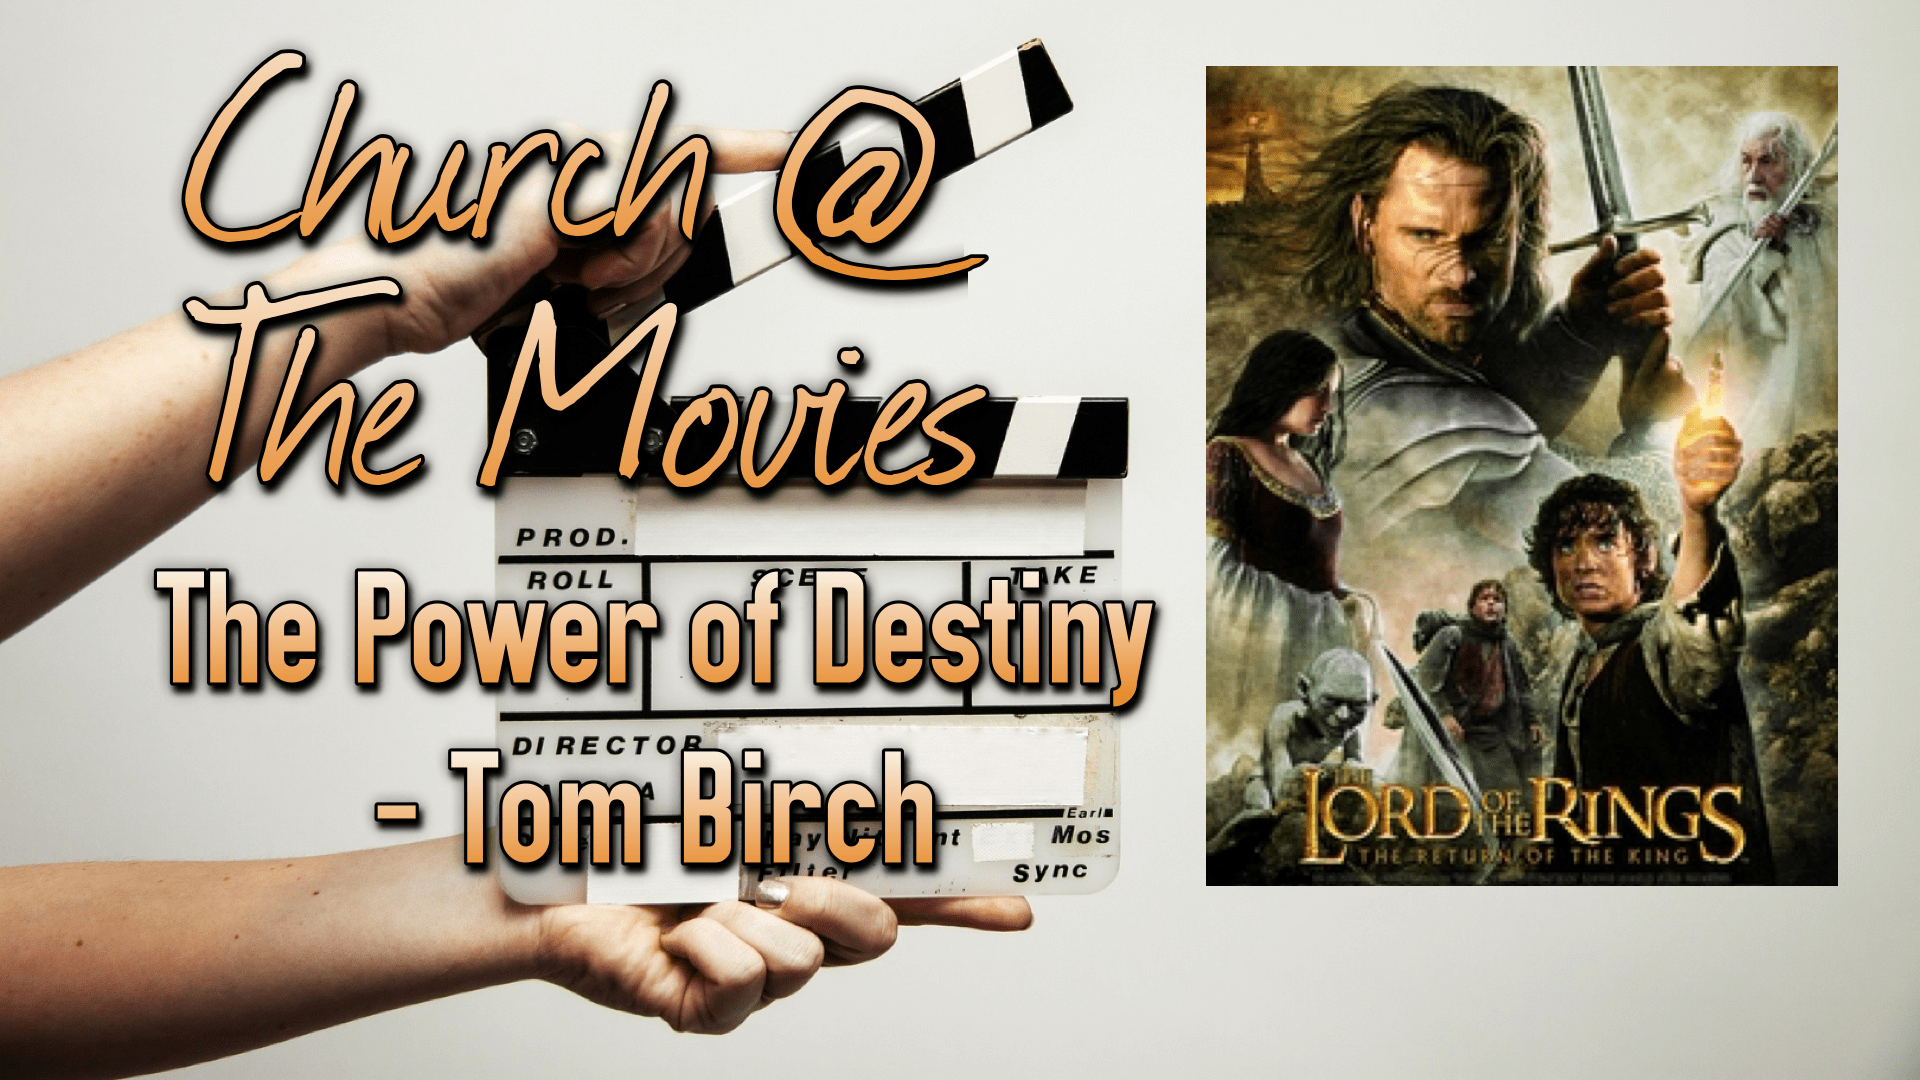 Church @ The Movies - Lord of the Rings - The Power of Destiny